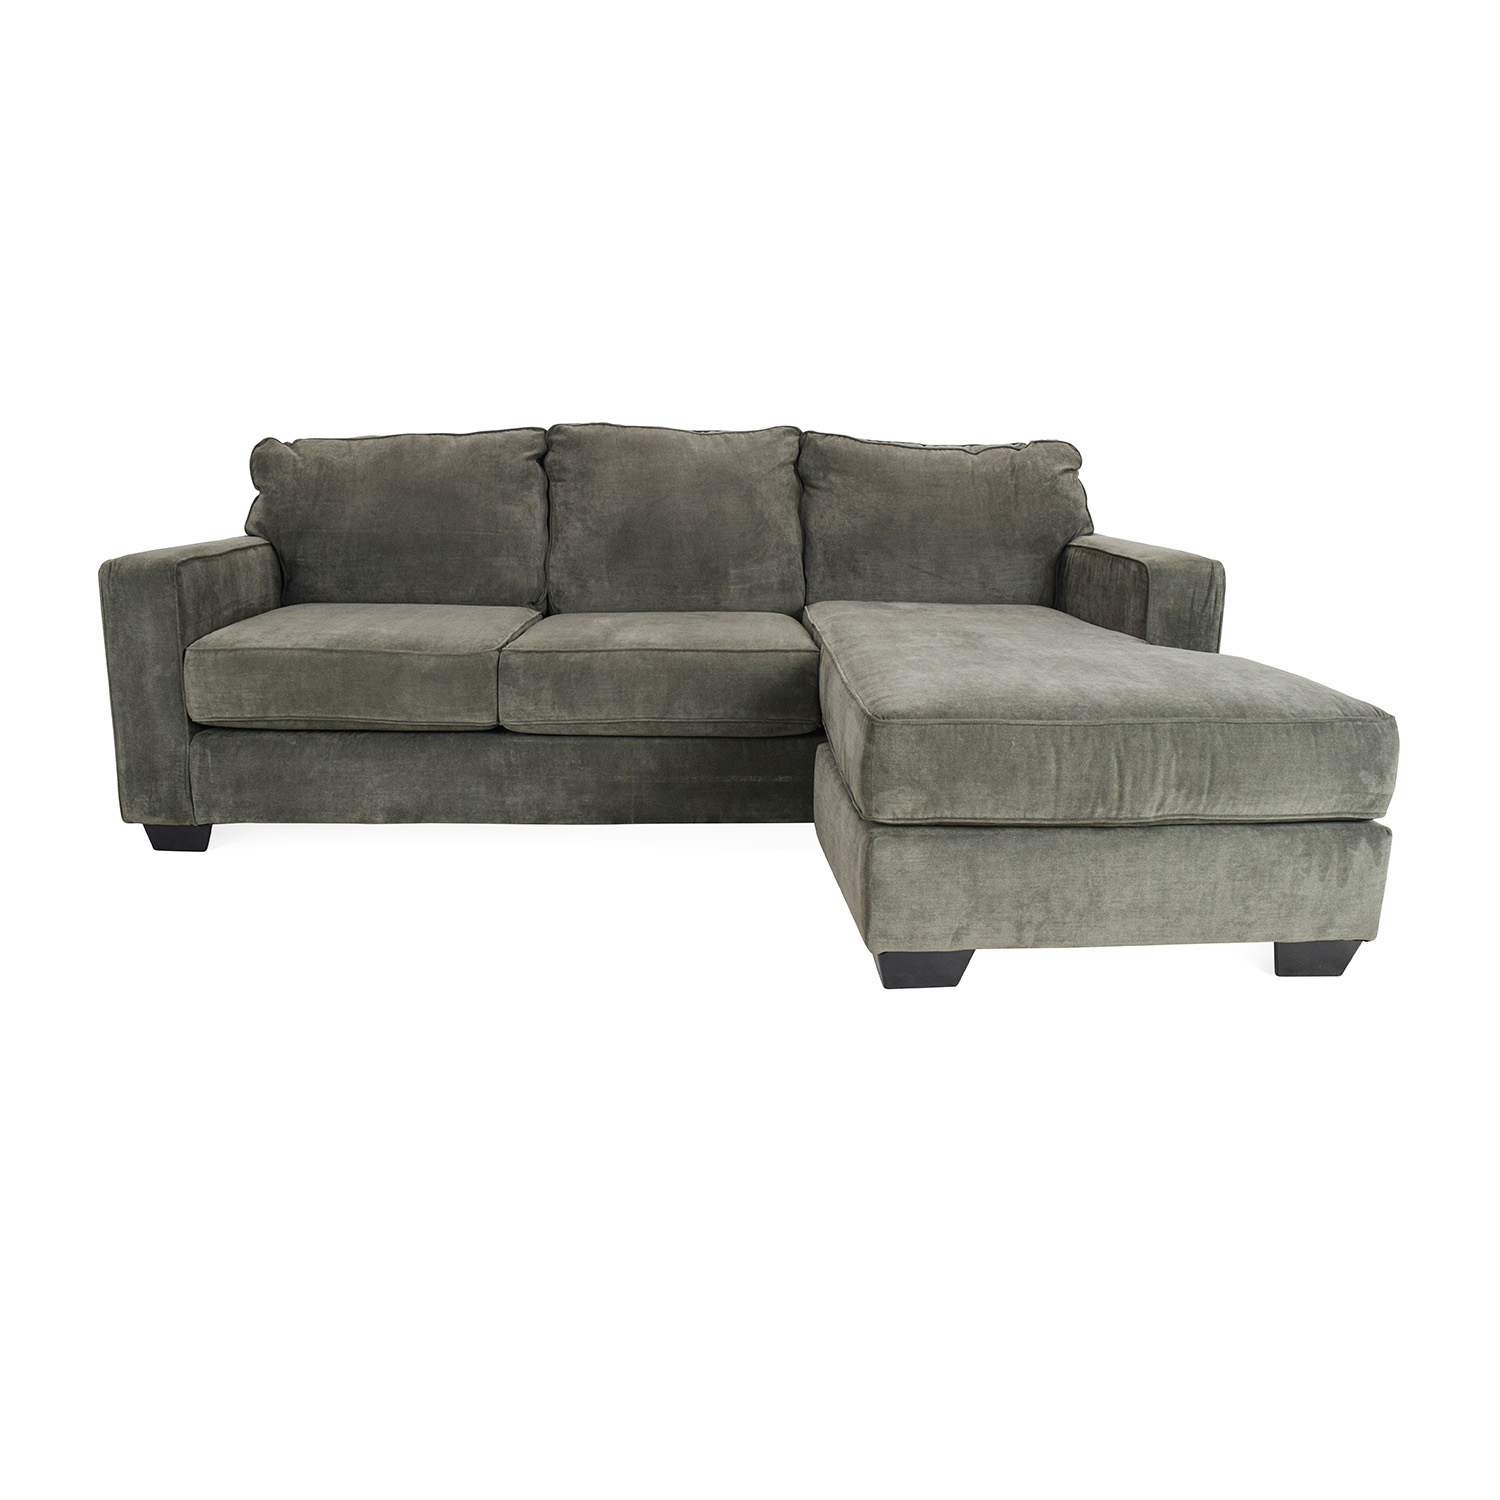 Jennifer Convertibles Jennifer Convertibles Sectional Sofa Nj ...